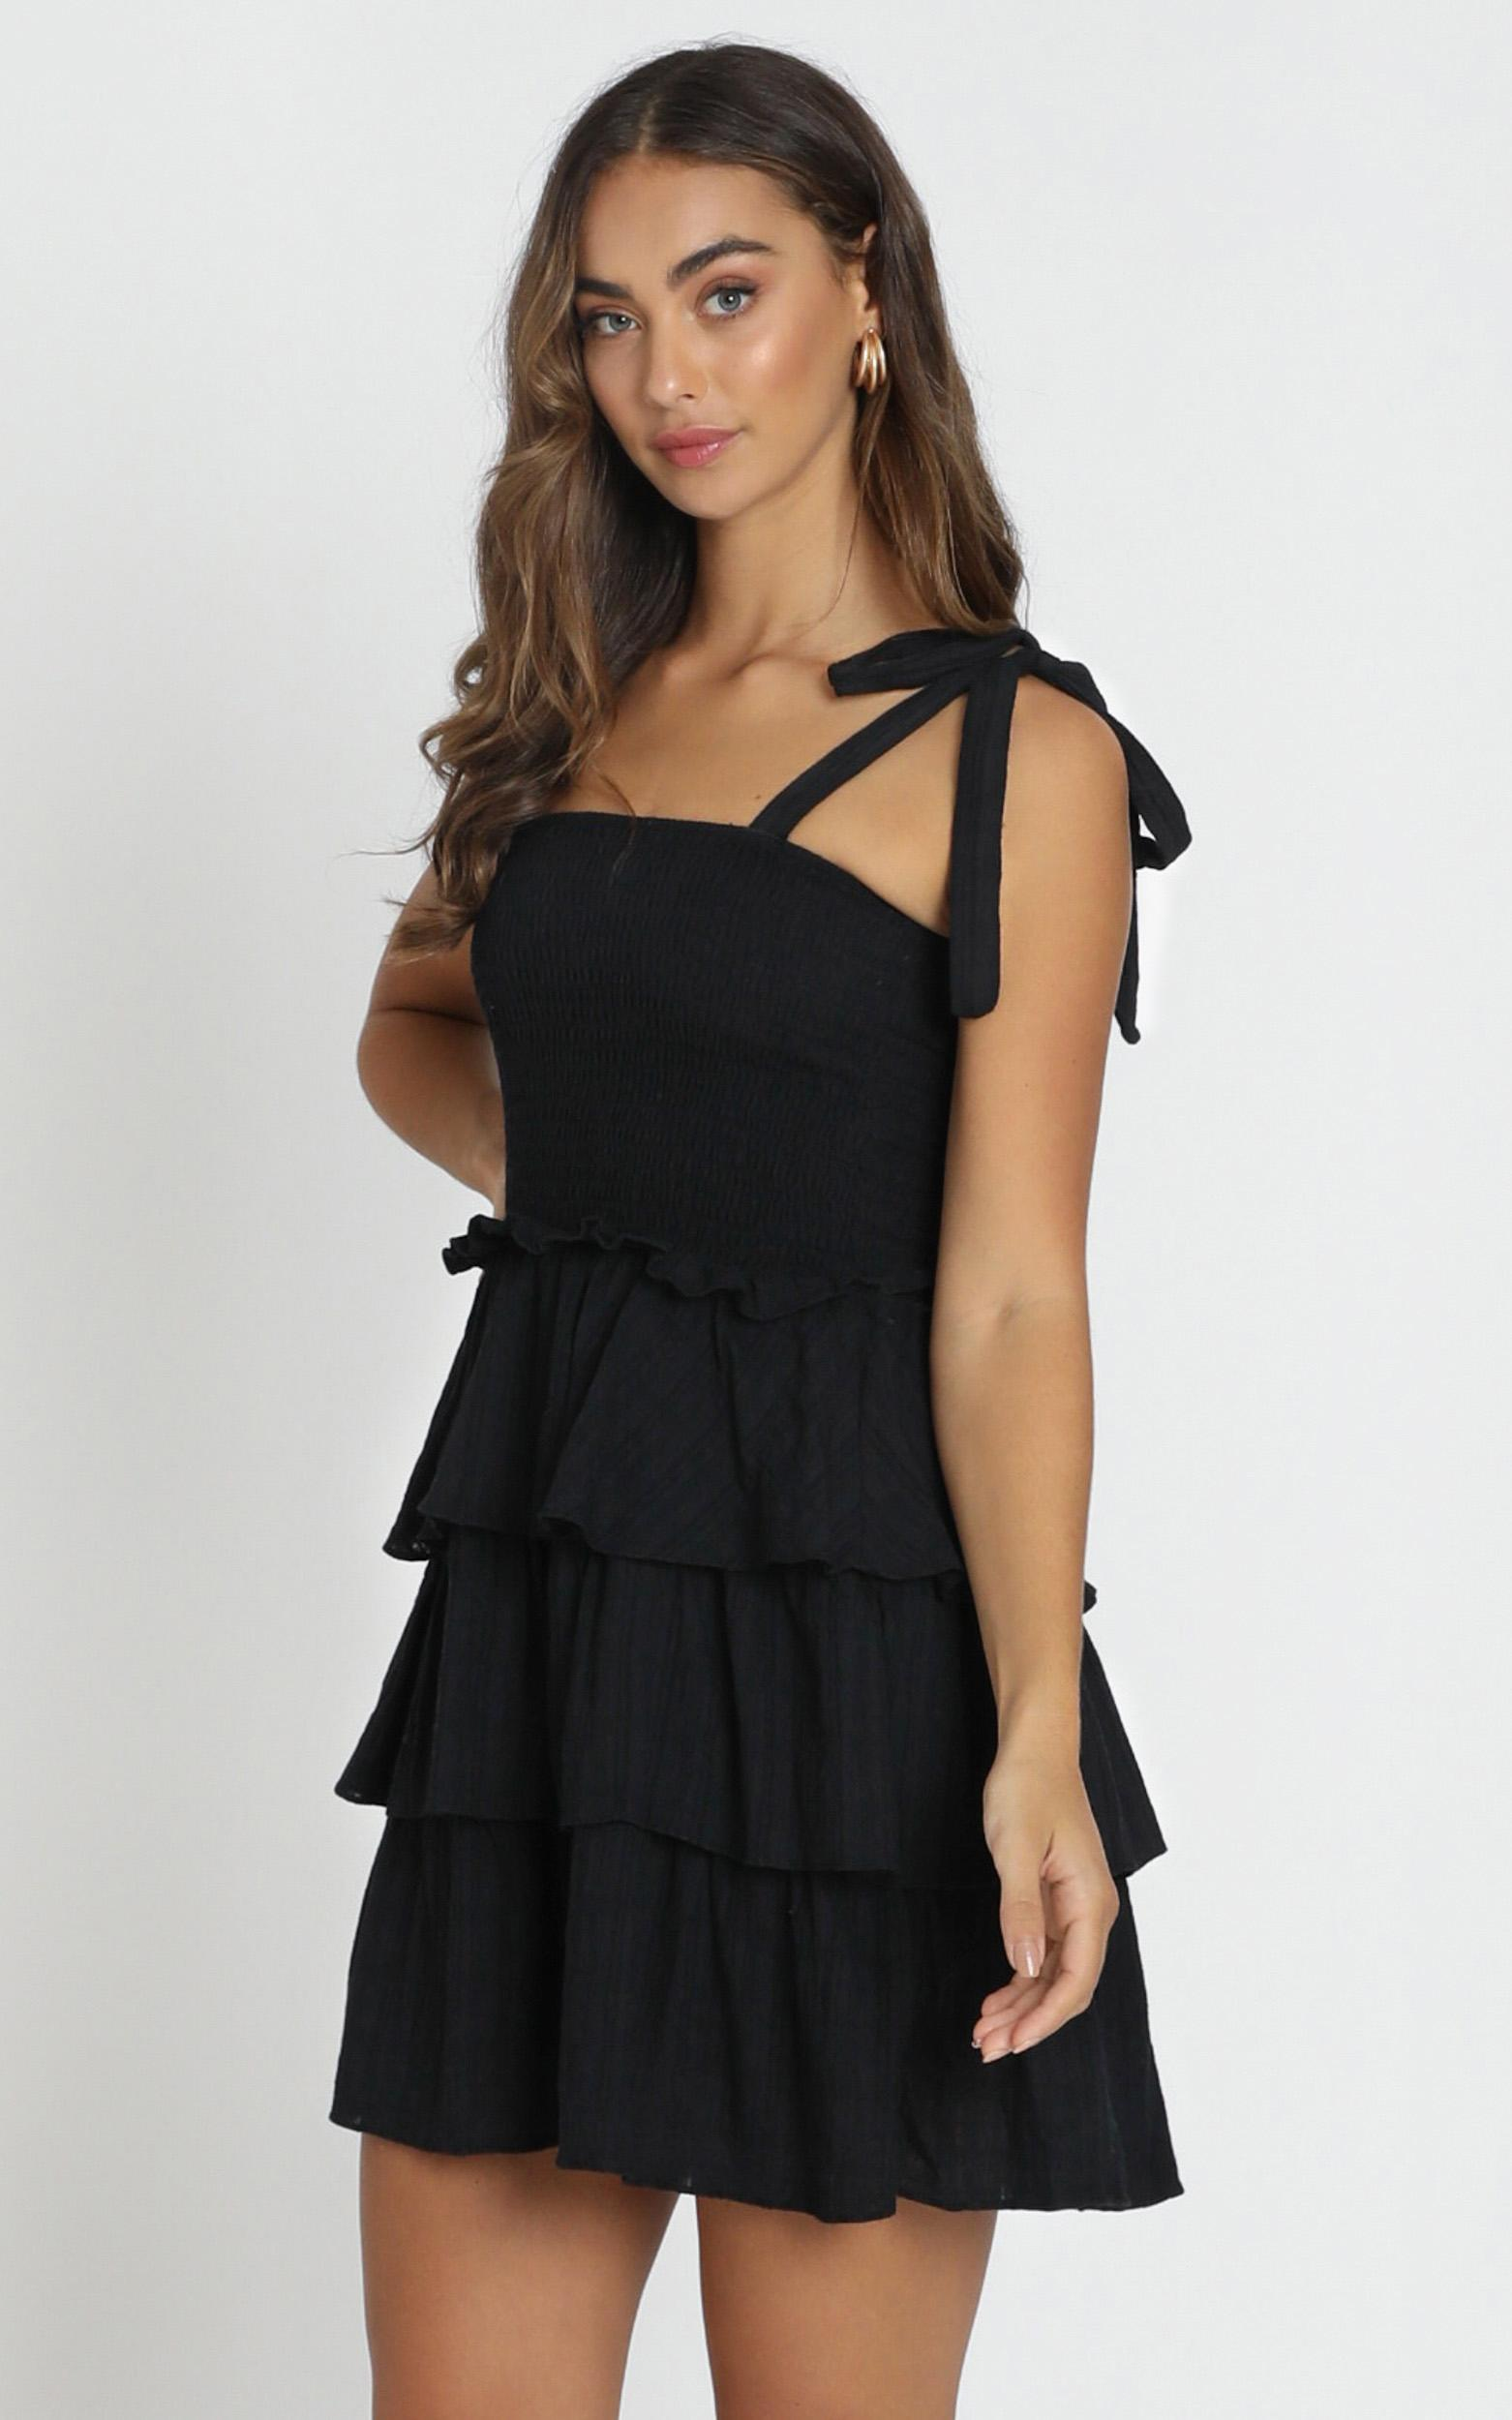 Paislee Tied Dress in black - 6 (XS), Black, hi-res image number null